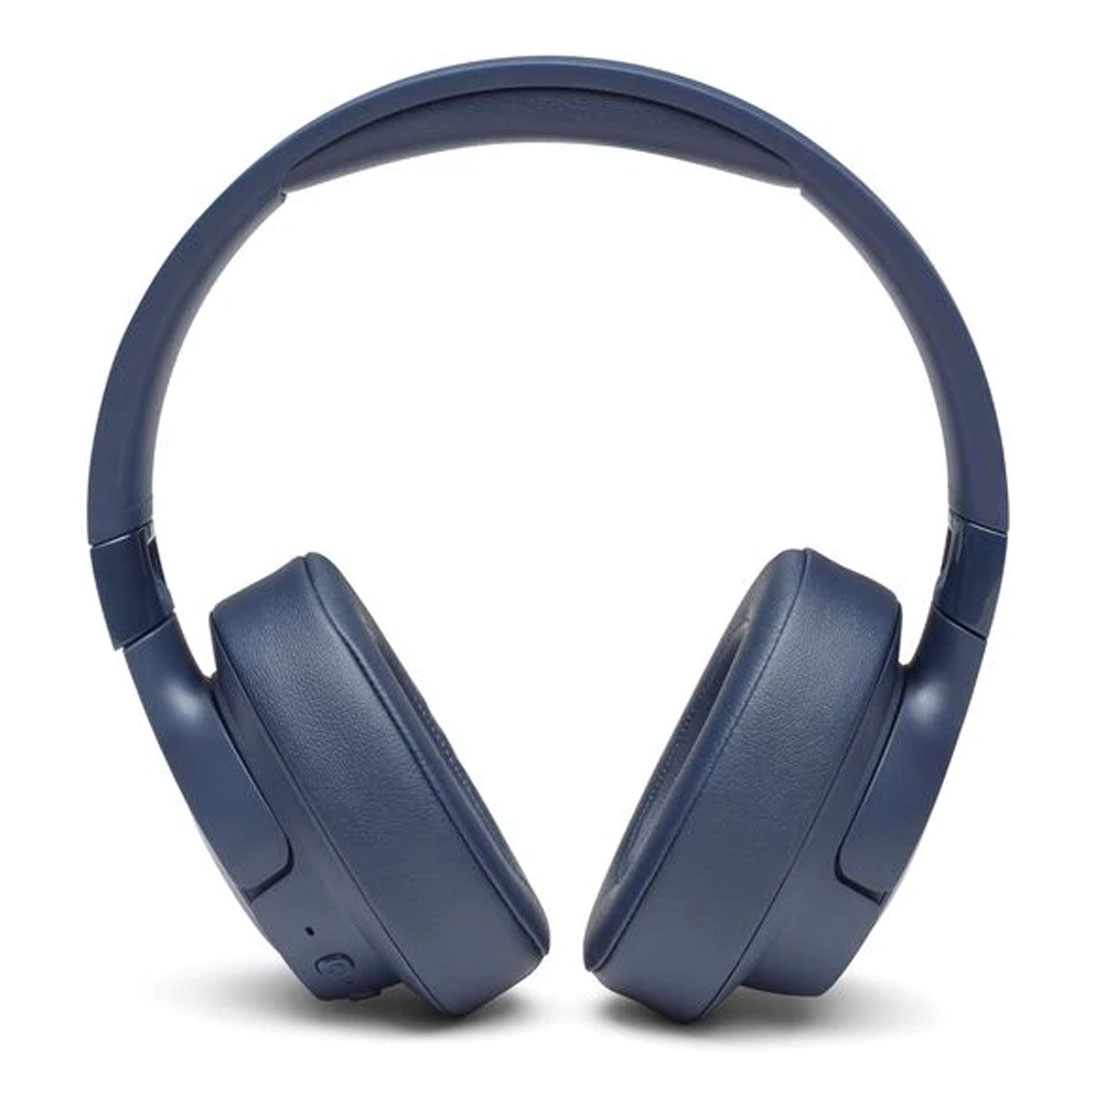 JBL Tune 750BTNC Wireless Over-Ear Active Noise Cancelling Headphones - Blue